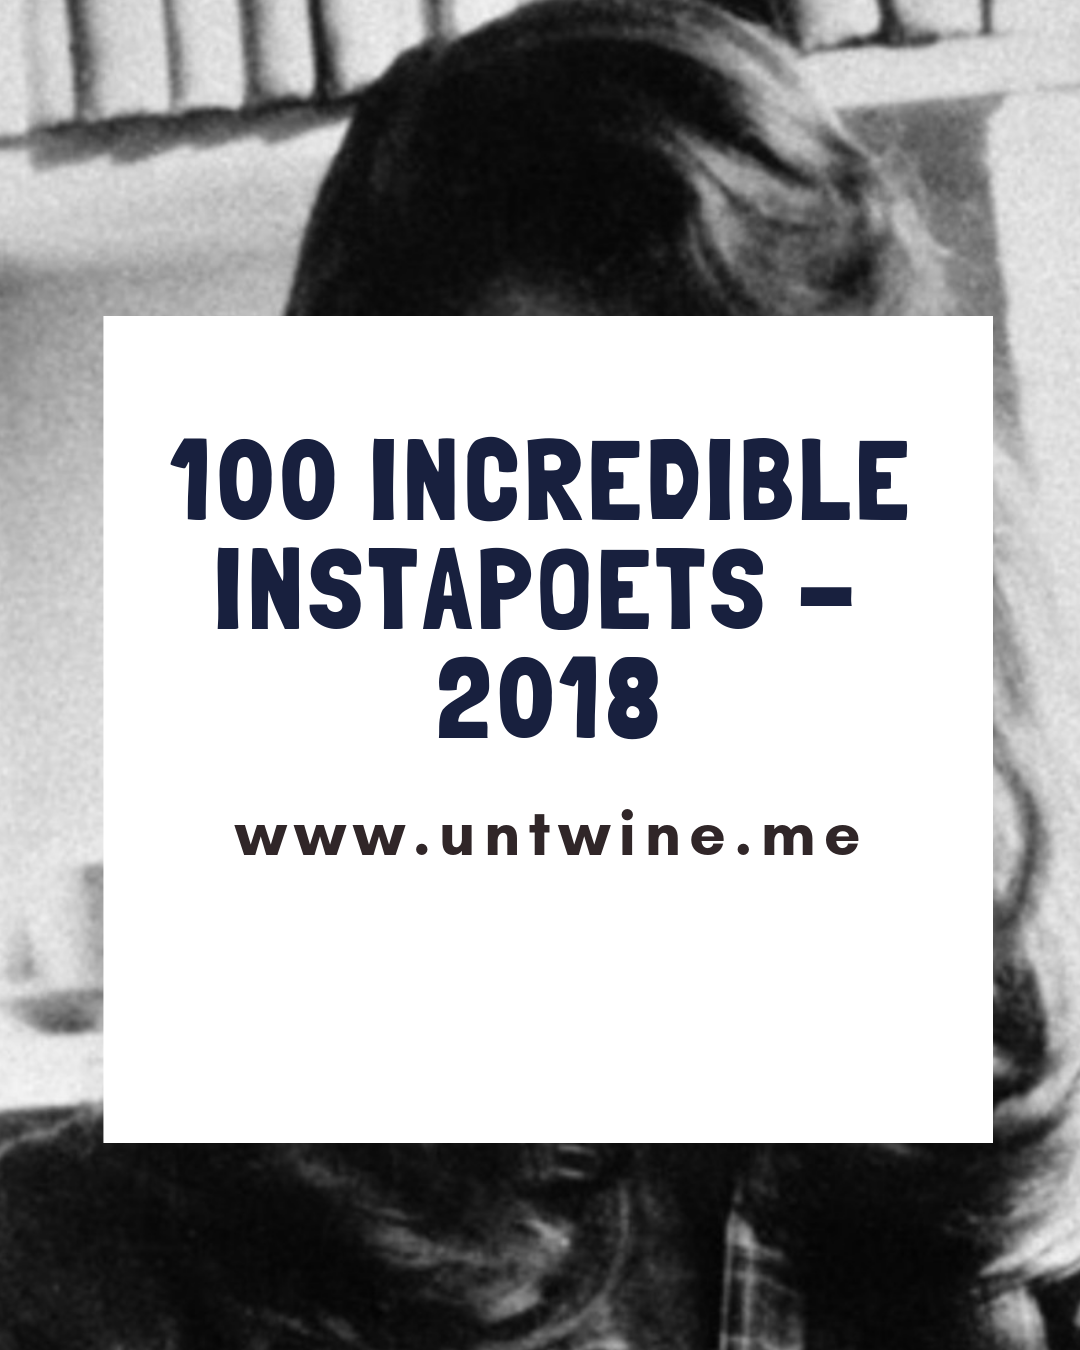 100 INCREDIBLE INSTAPOETS OF 2018: LIPSTICKANDMIRACLES